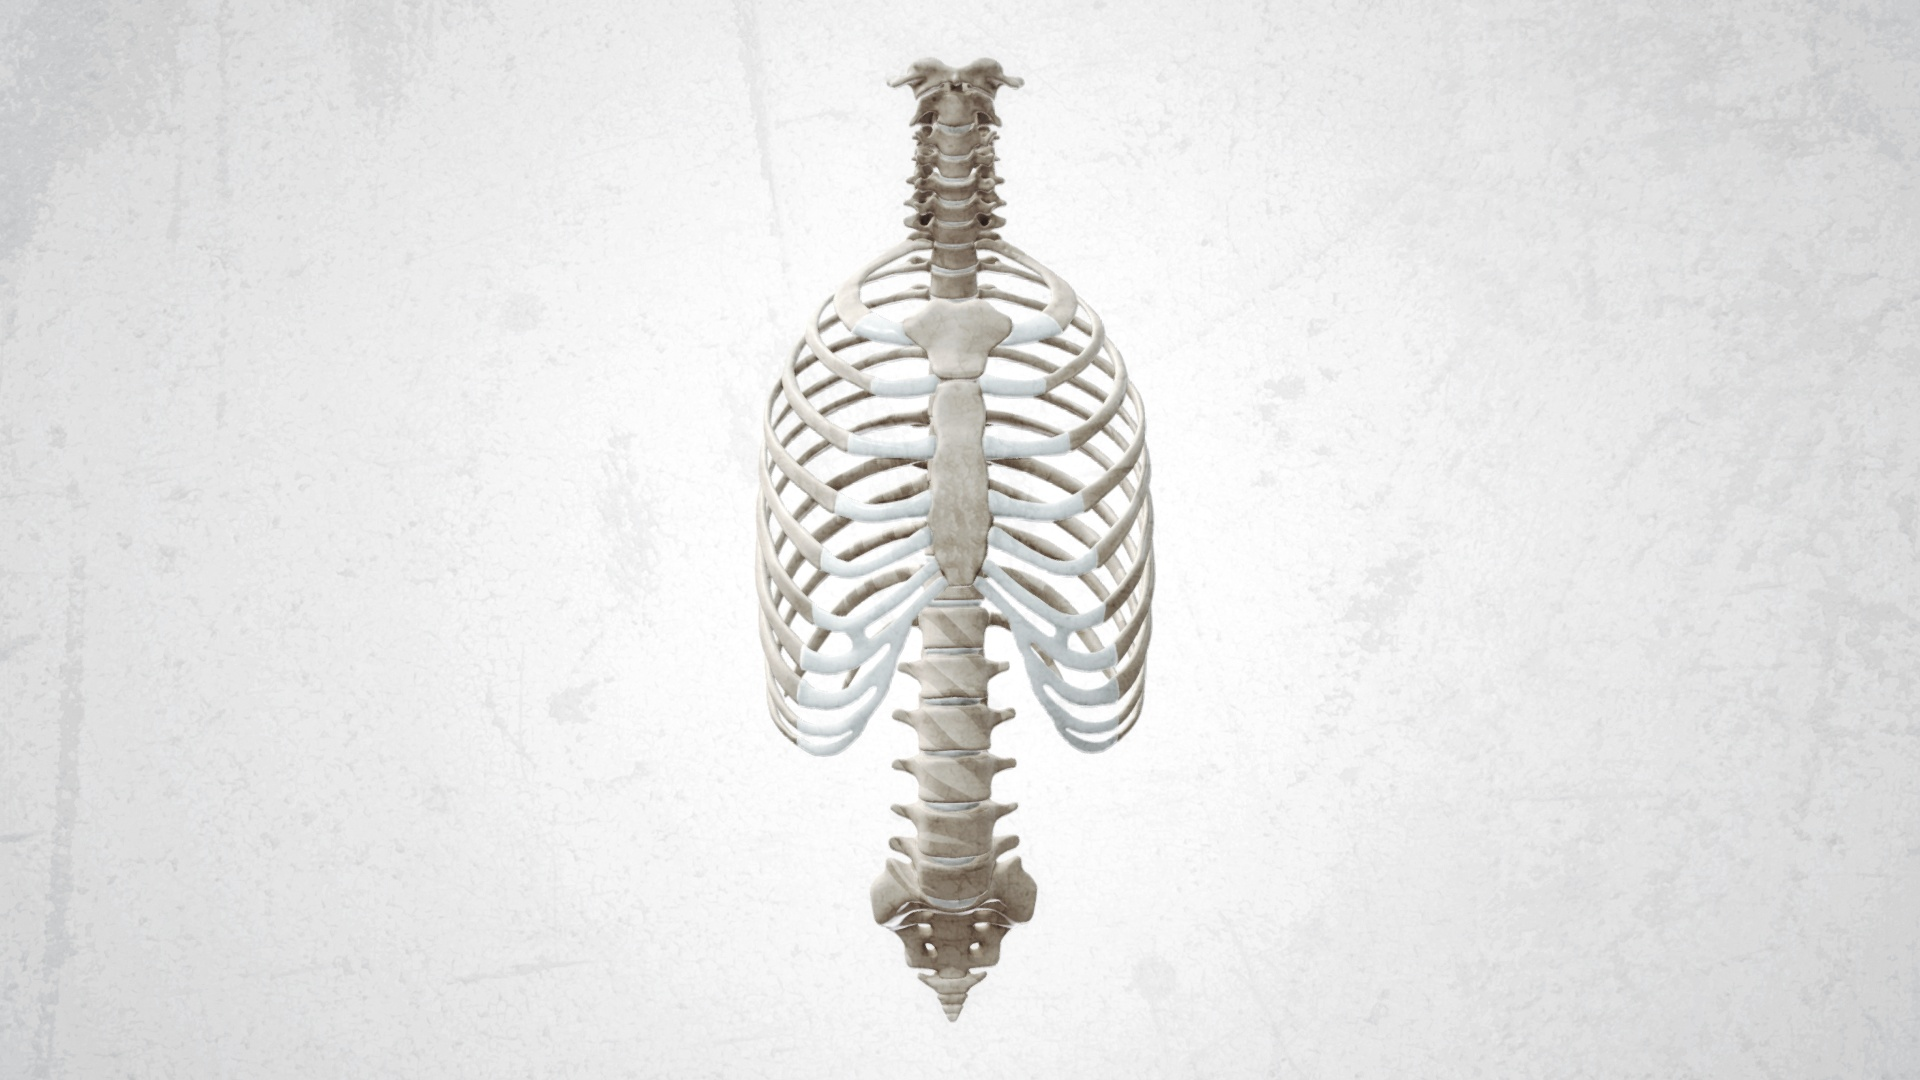 Ribcage with spine and humerii